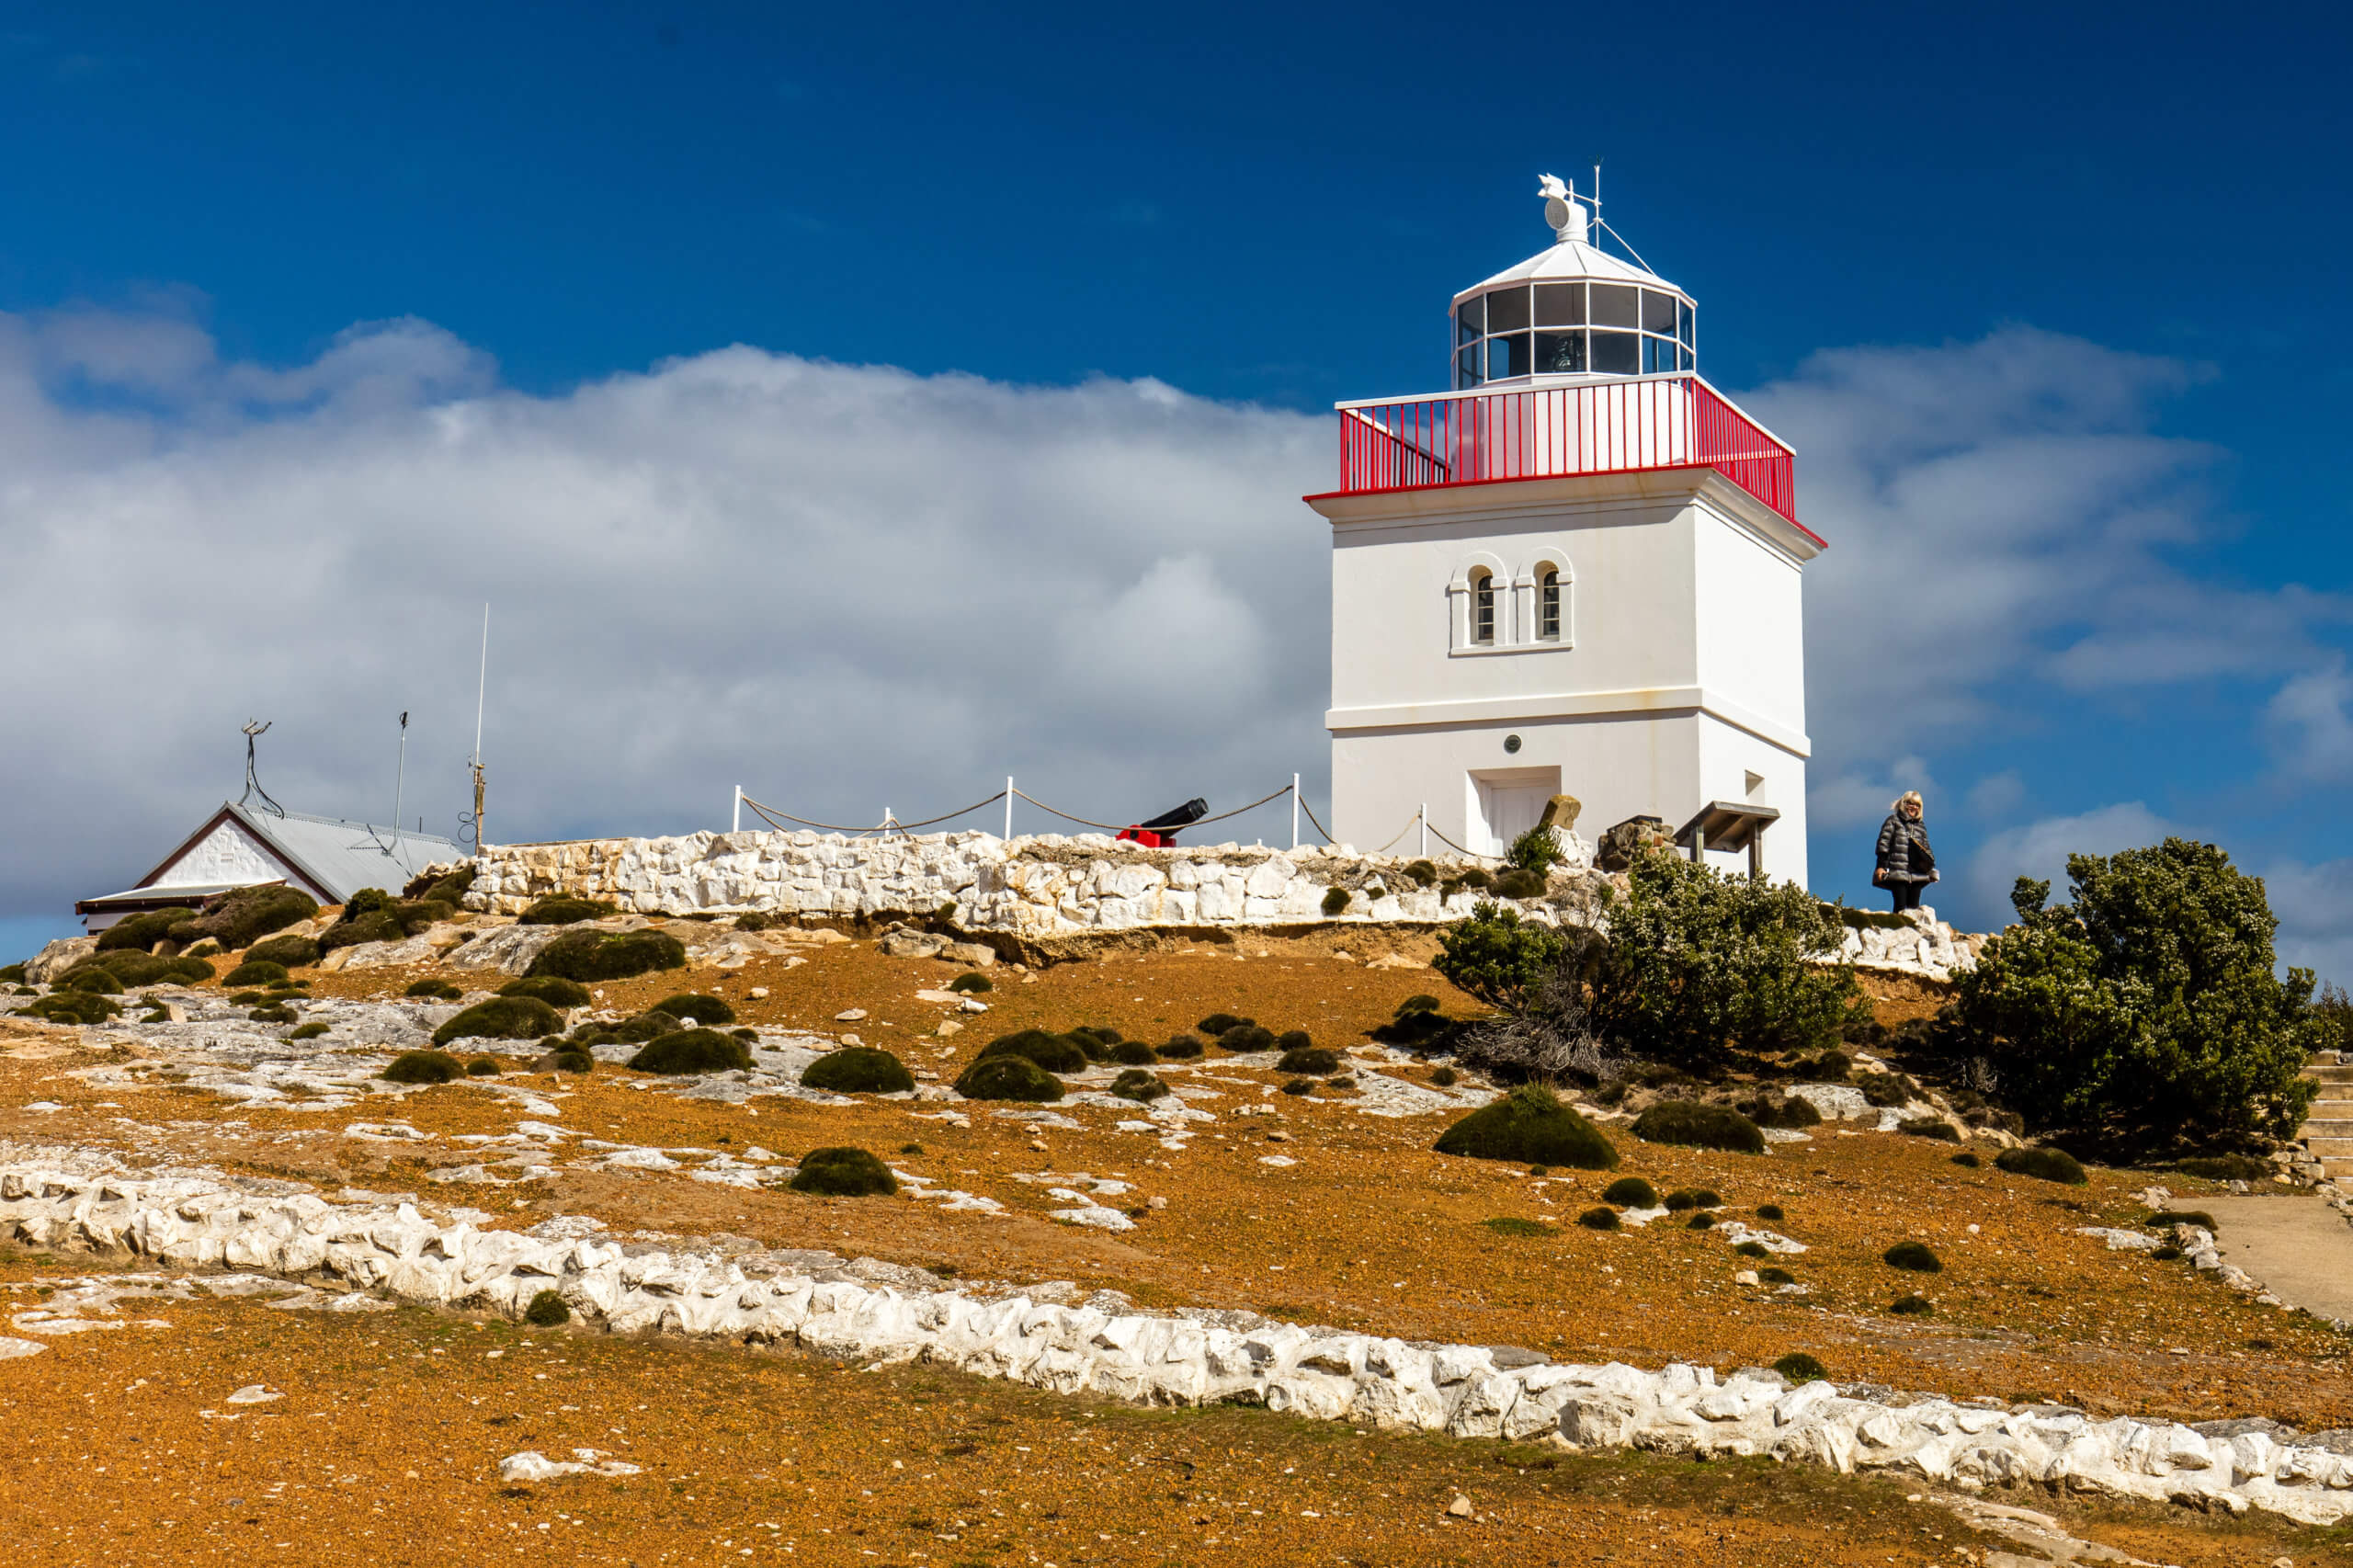 Cape Borda Light House